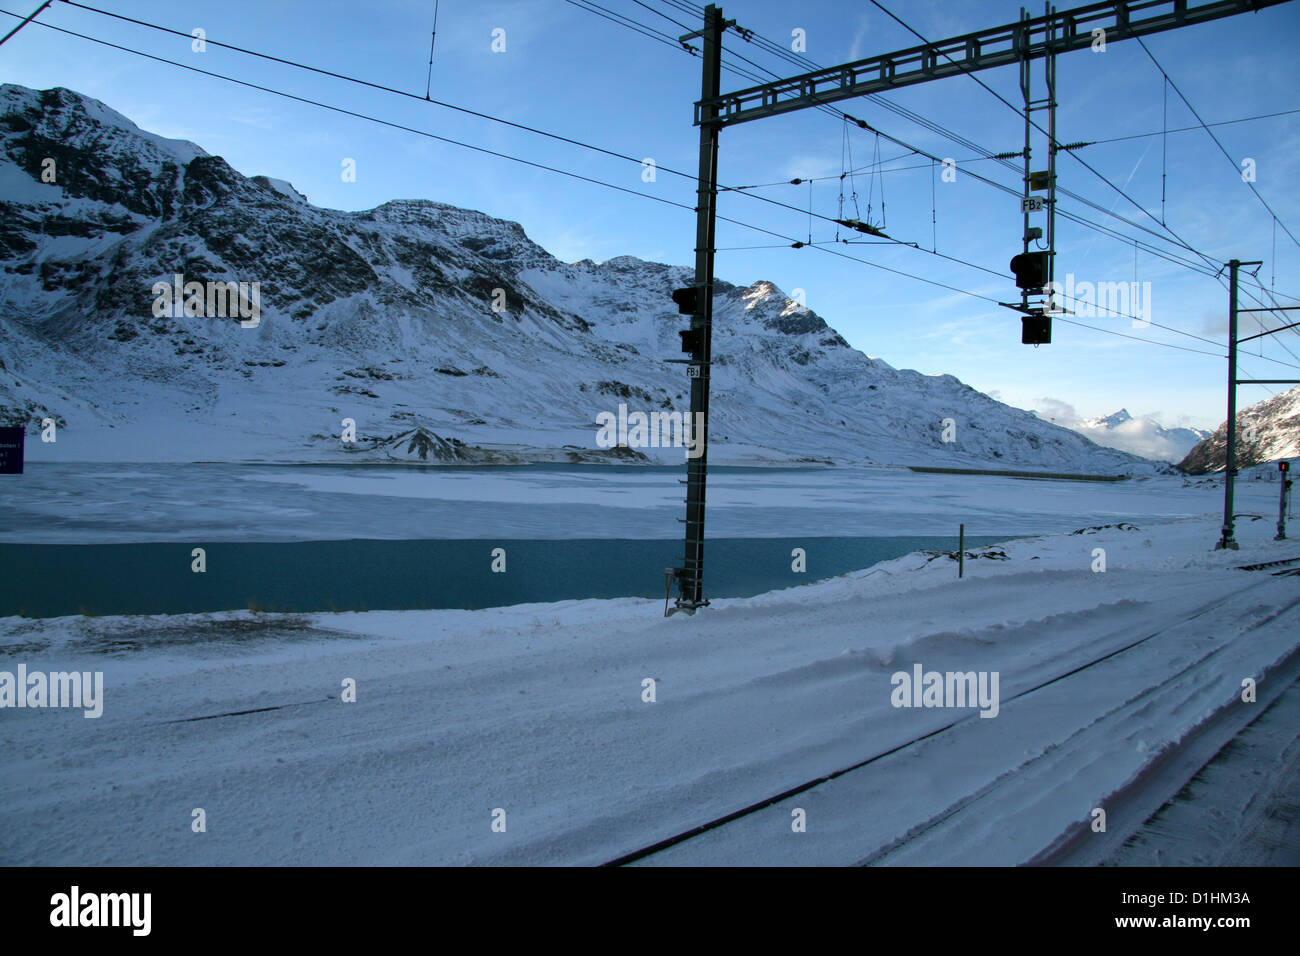 A very nice winter landscape from Bernina Express, of railraod near a frozen lake in Pontresina, Alp Grum, Switzerland - Stock Image